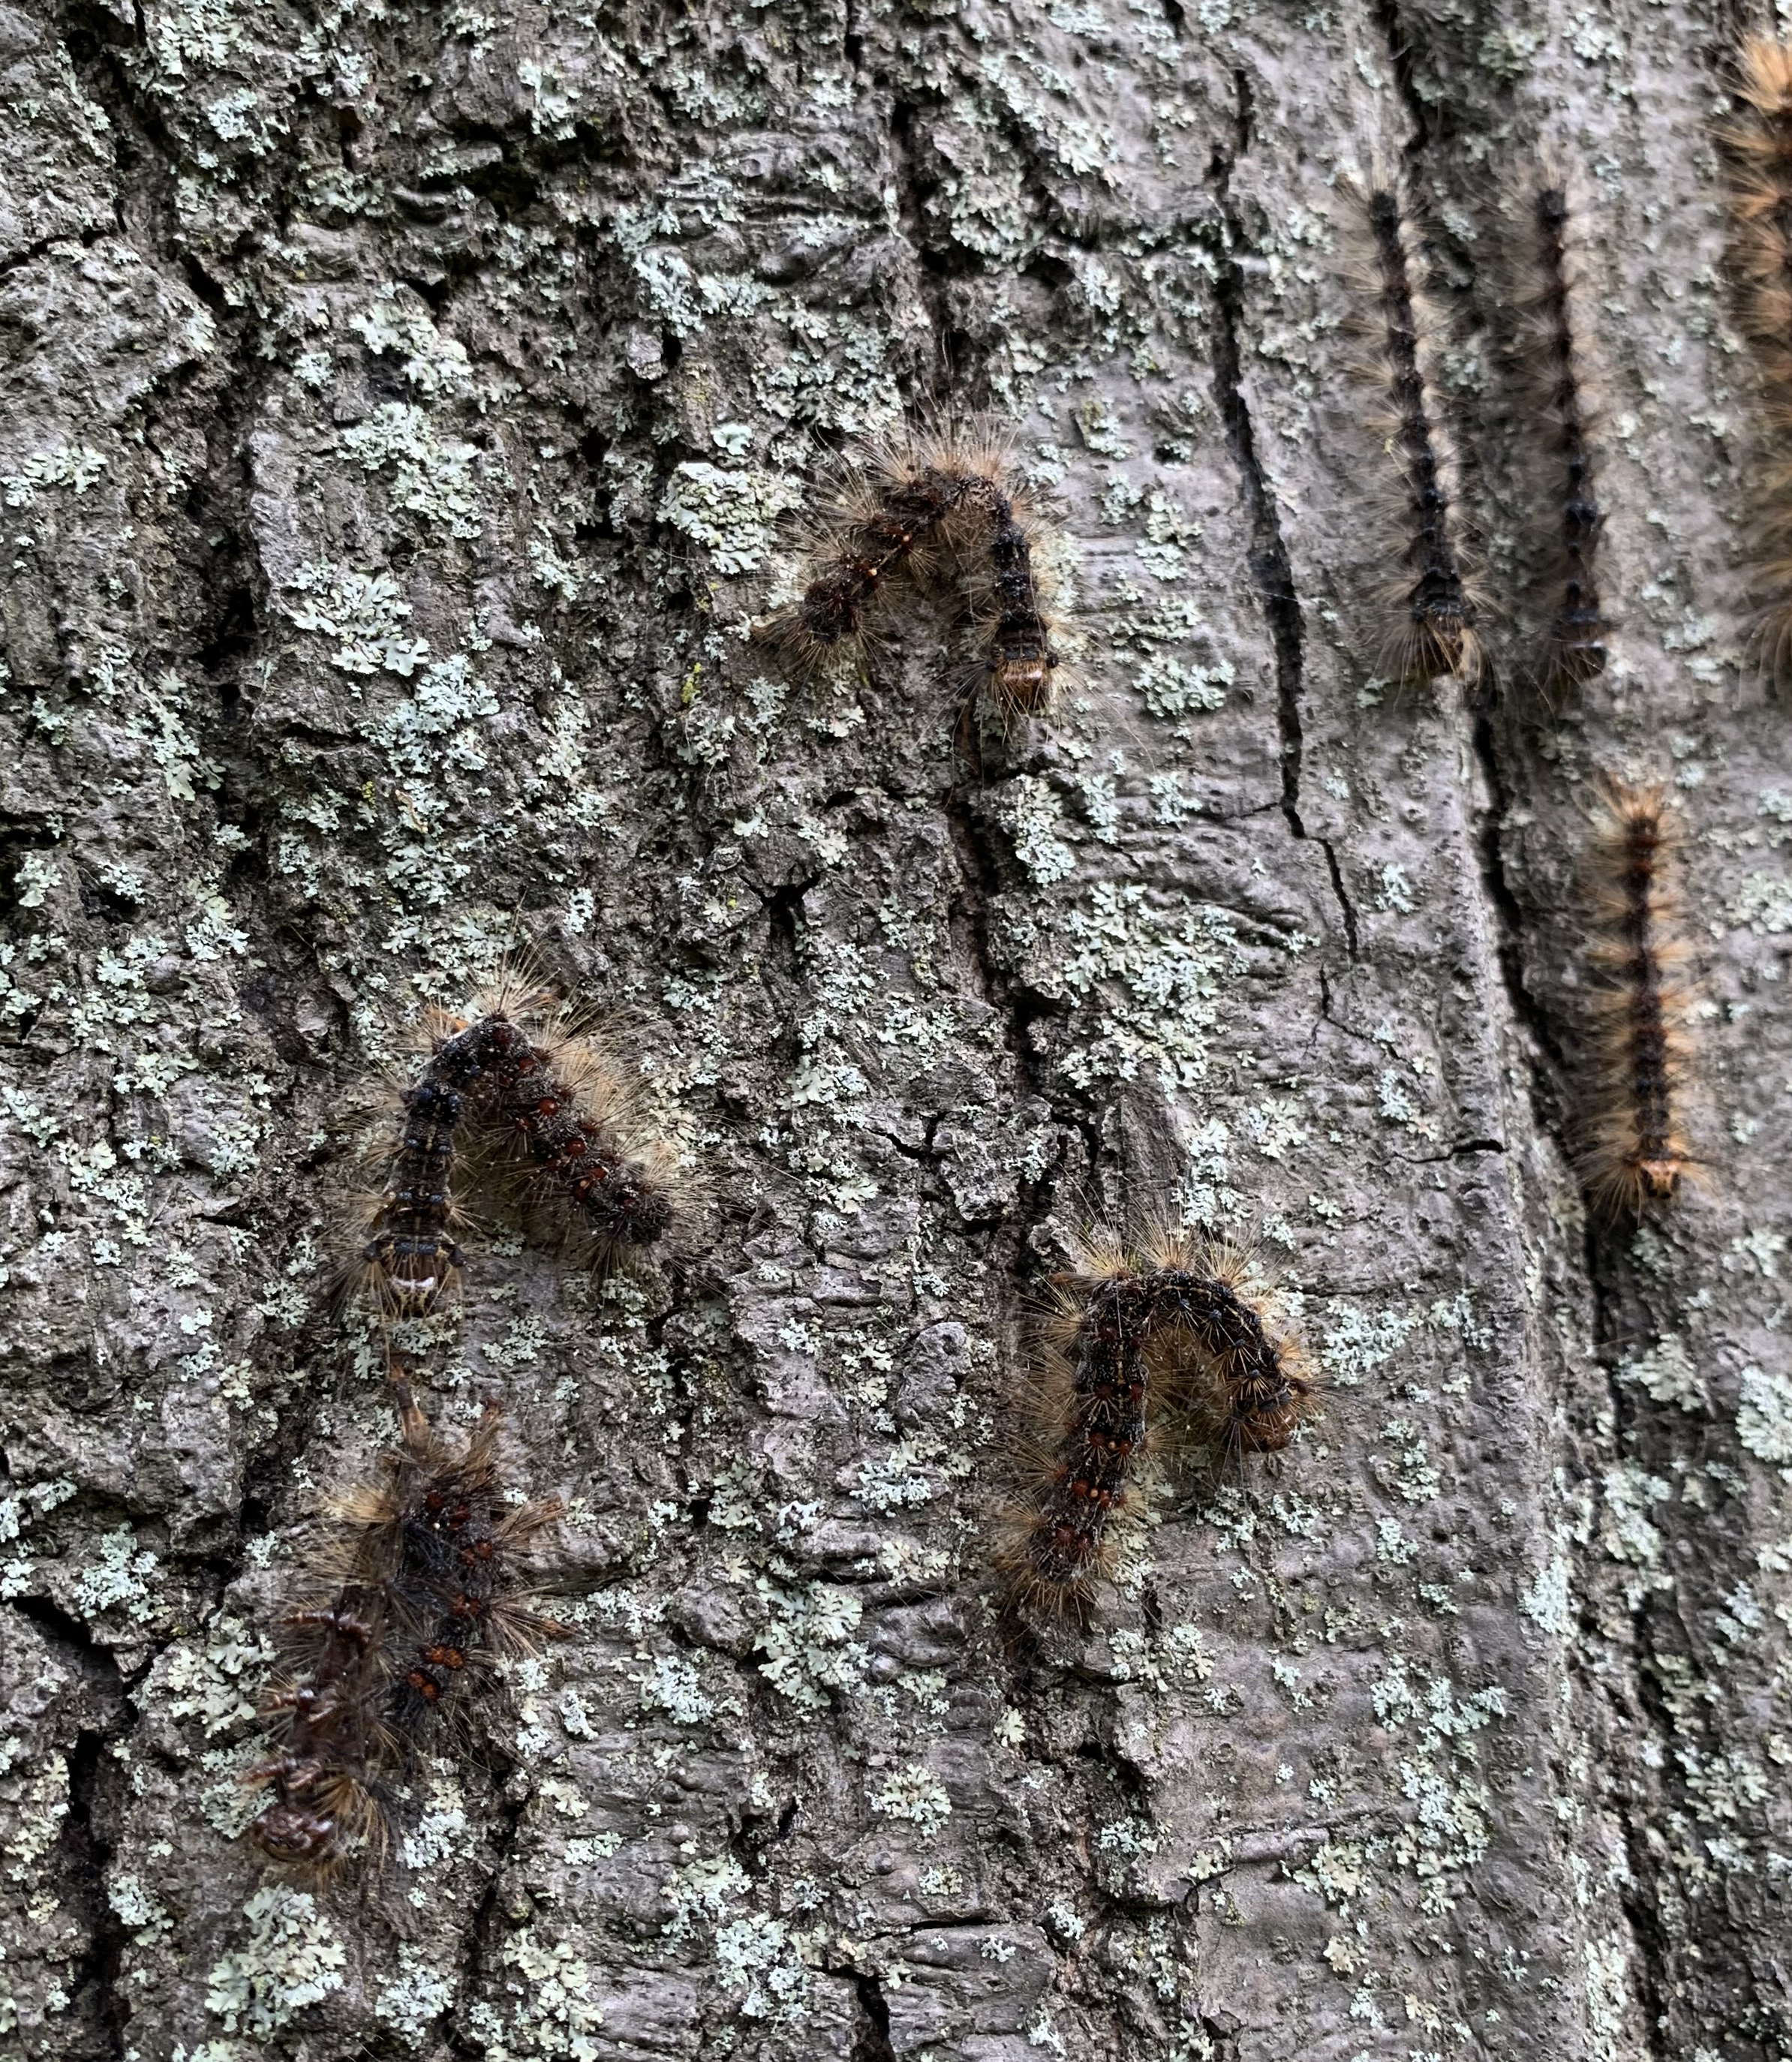 Gypsy moth infected by virus